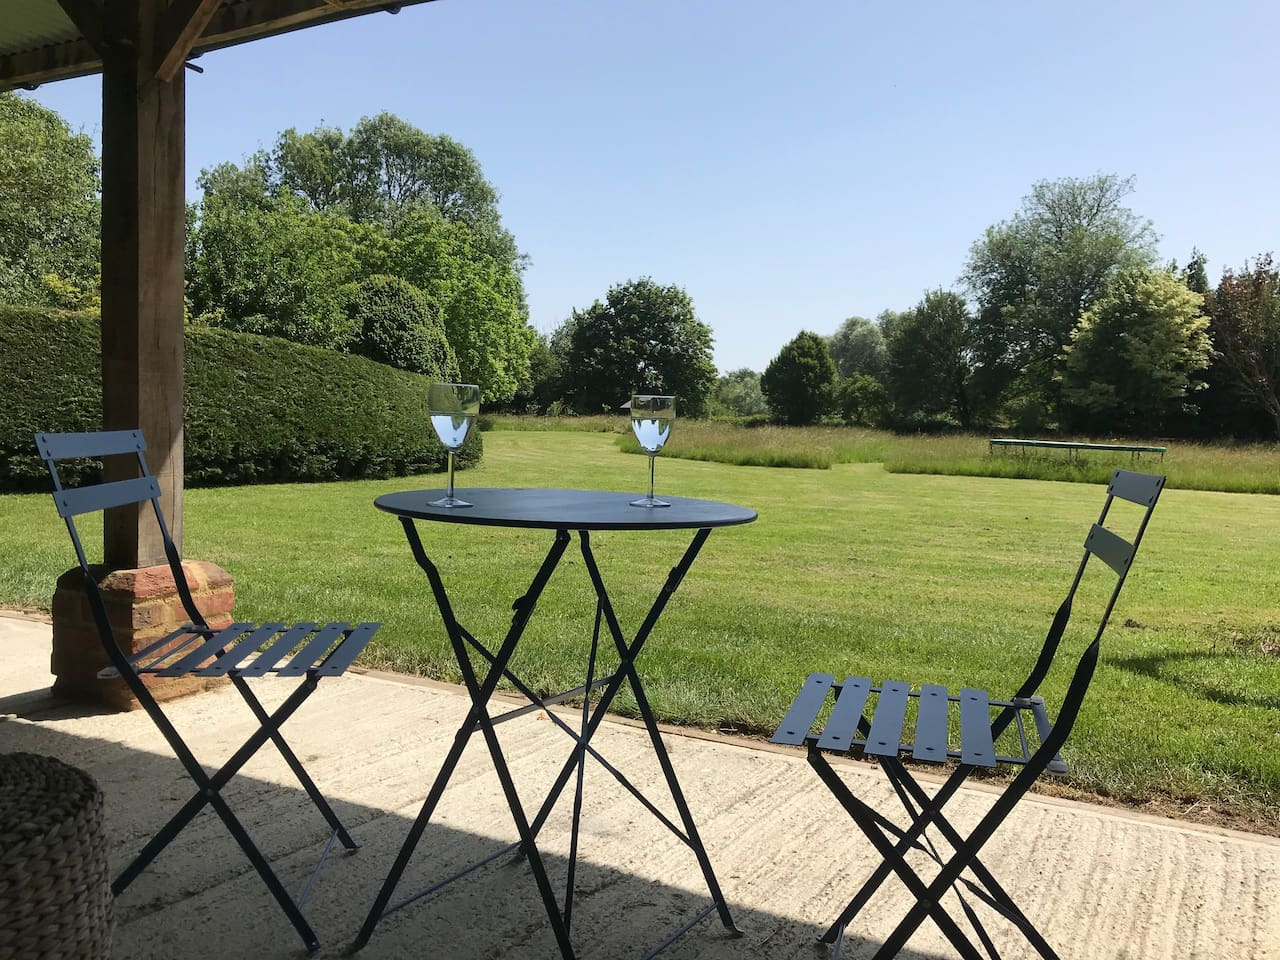 Secluded seating area overlooking private meadow. Perfect for those warm evening drinks